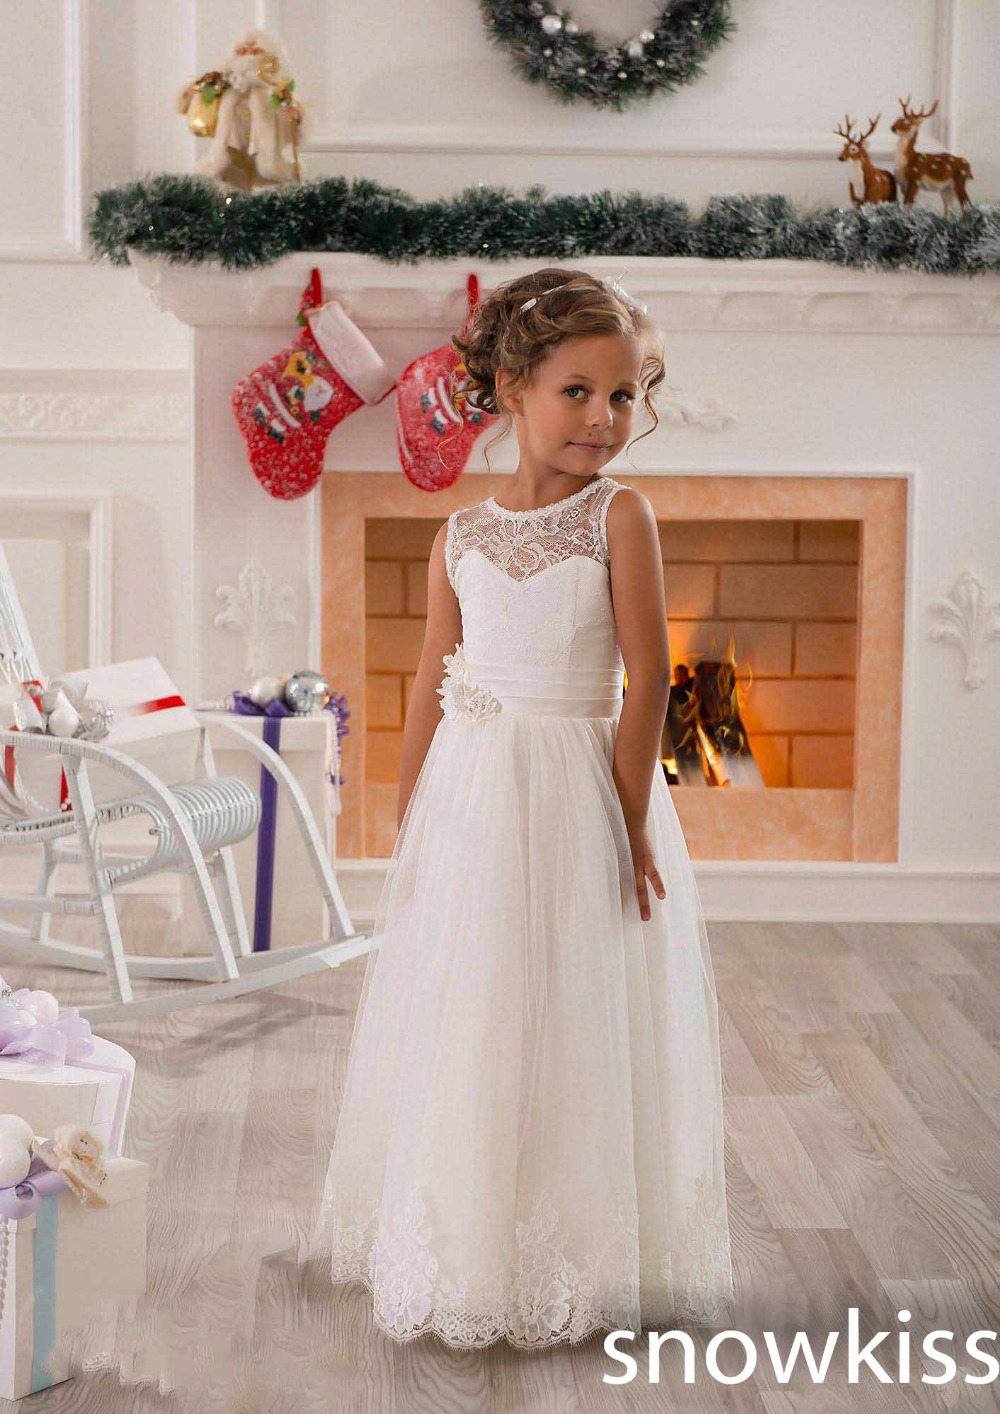 New arrival white/ivory sheer neck lace tulle A-line flower girl dress beautiful kids first communion gowns for wedding occasion maison jules new women s small s white ivory sheer pintuck buttonup blouse $69 page 2